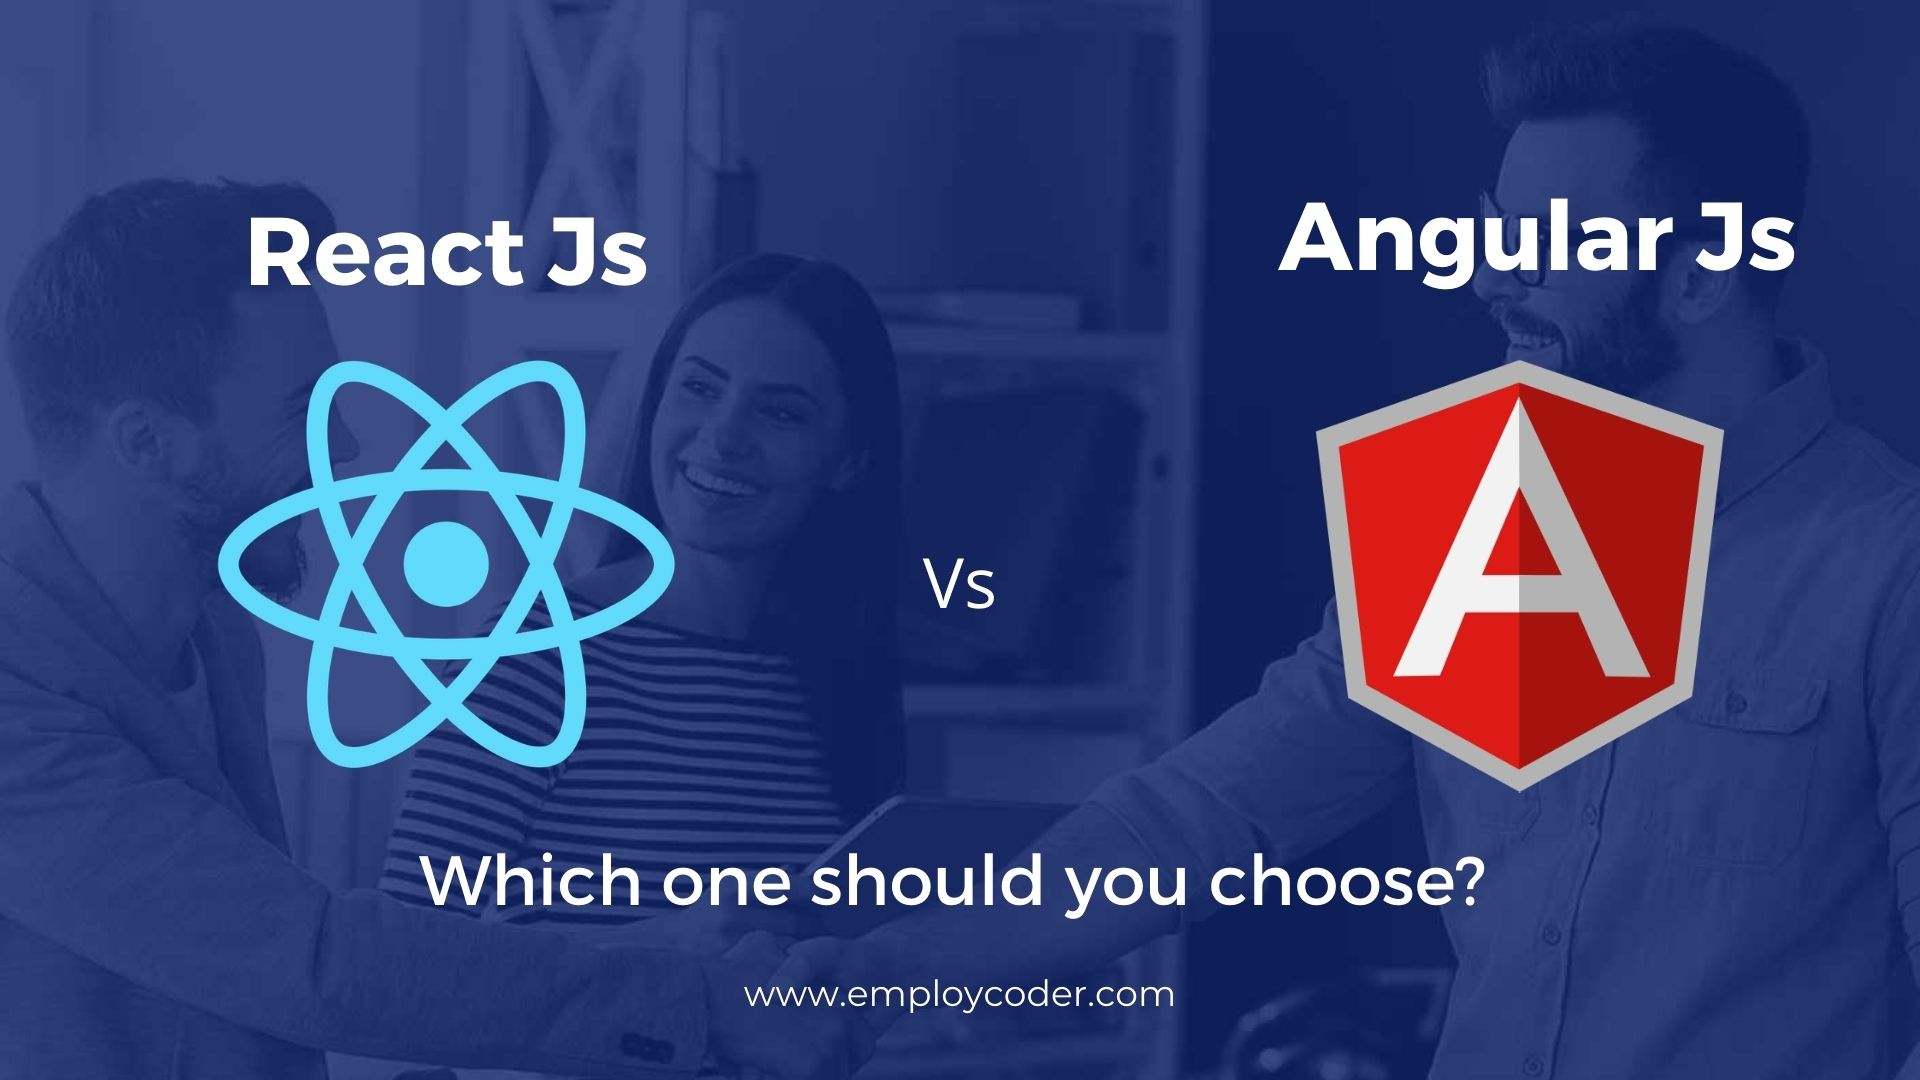 AngularJS vs ReactJS: Which Is Best for Front-end Development?